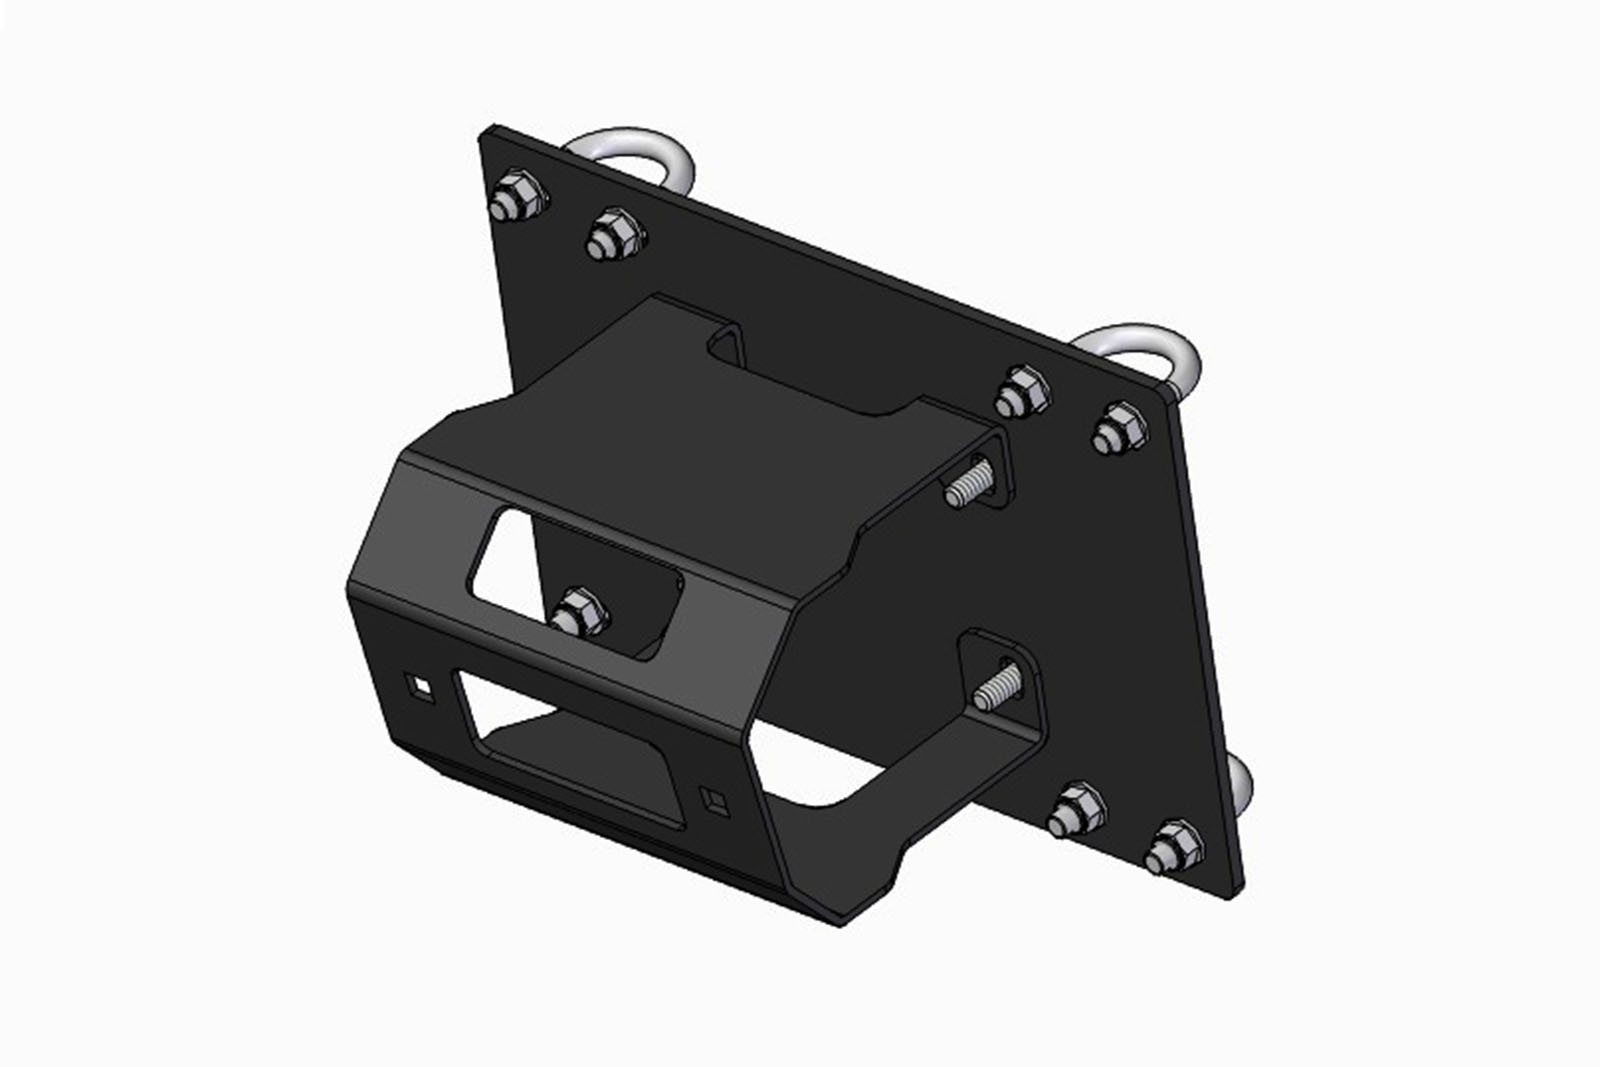 hight resolution of we currently offer front winch mounting kits for more than 150 atv or utv models and are constantly expanding our product range to find the right mounting